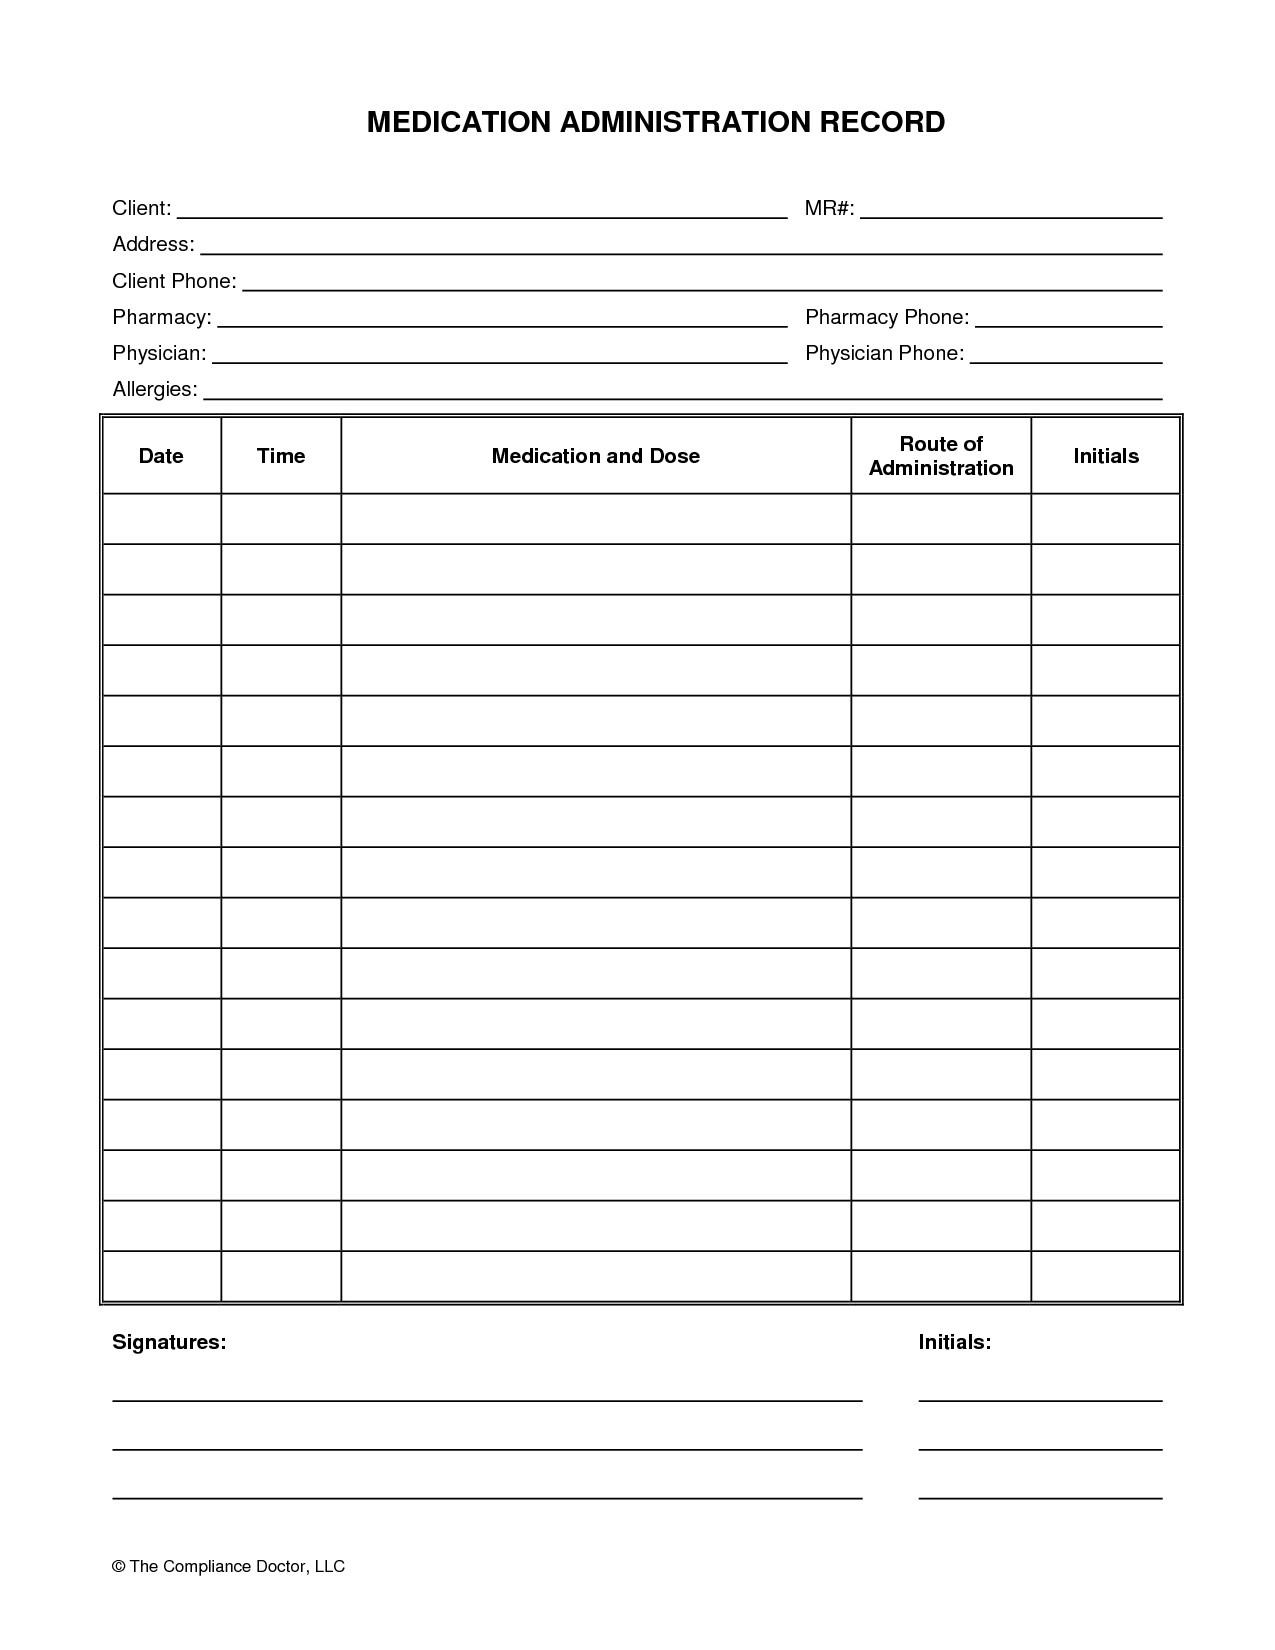 Blank Medication Administration Record Template Medication Administration Record form